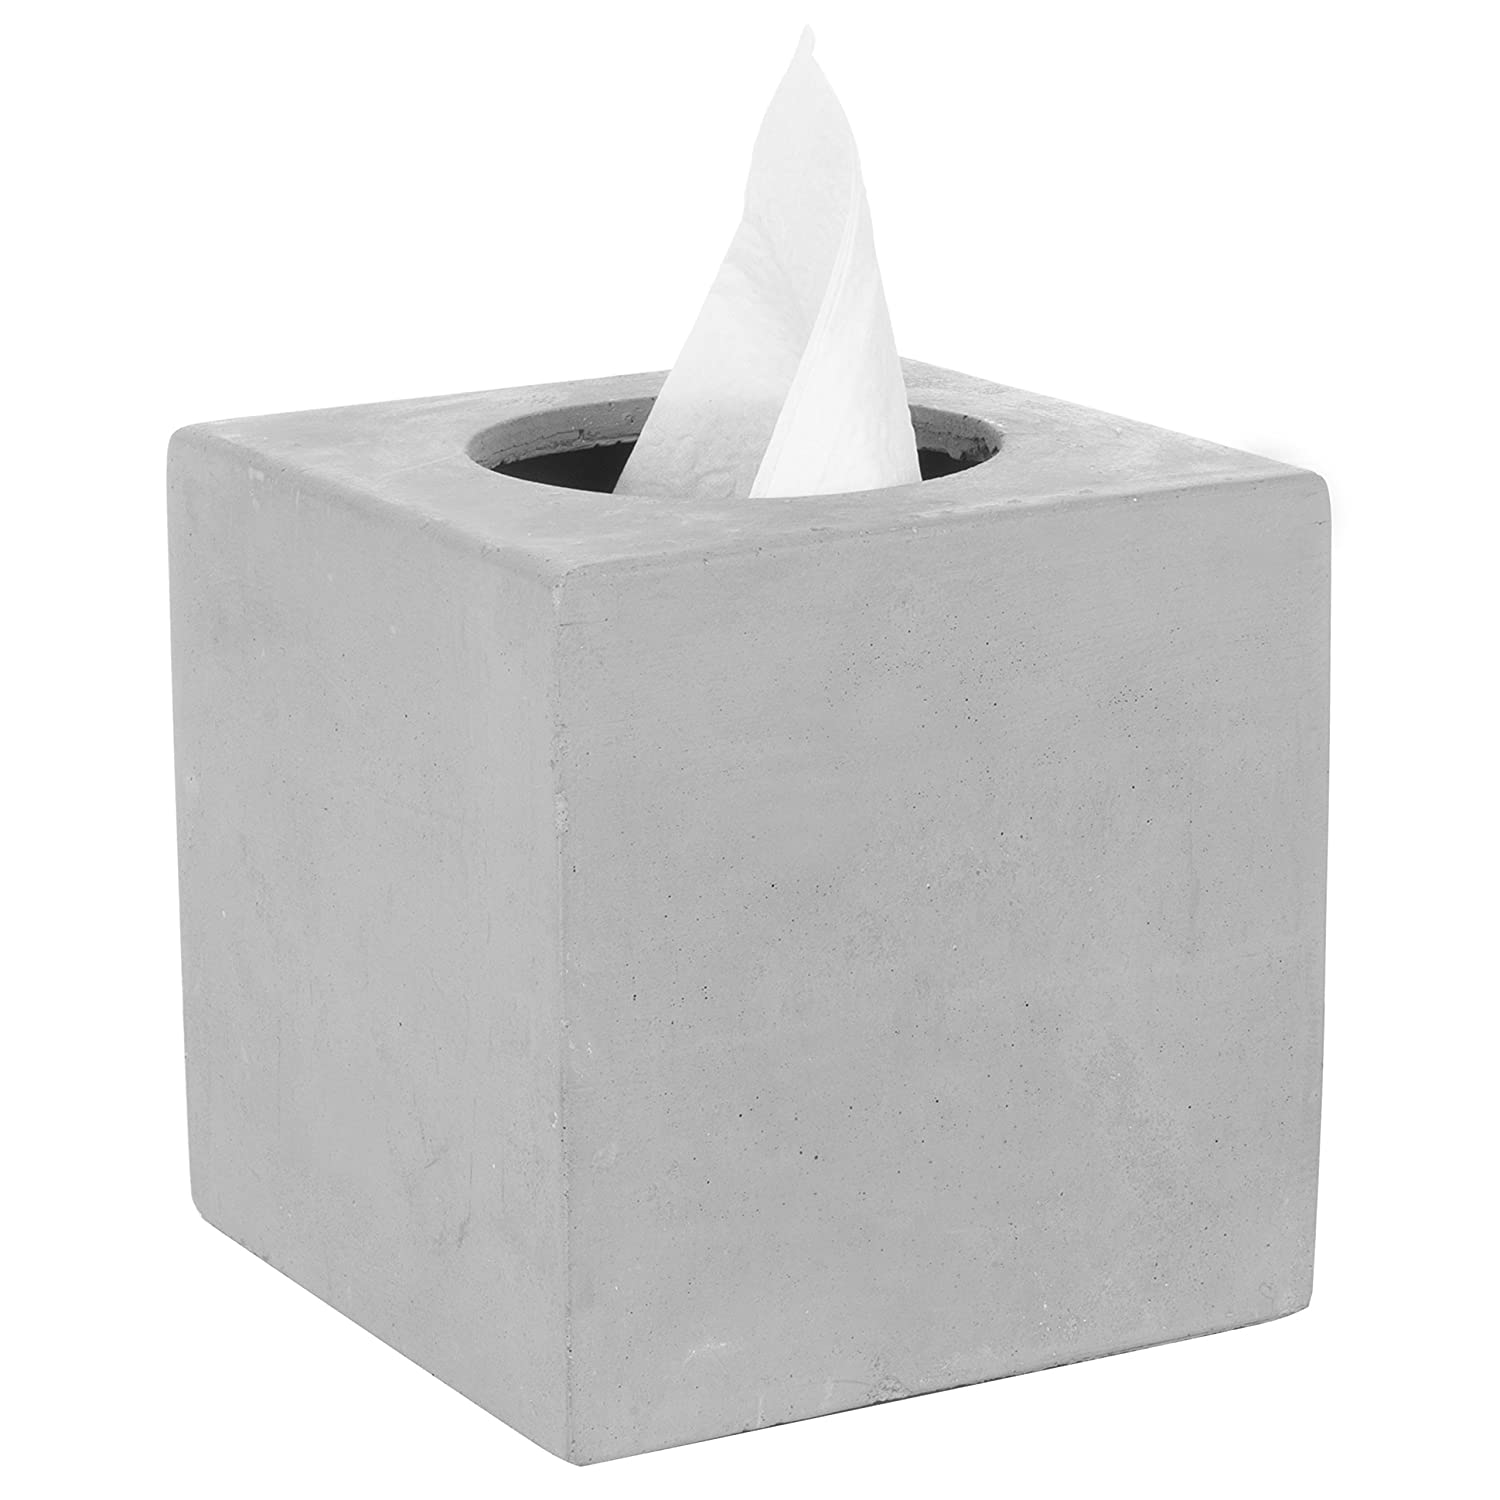 MyGift Modern Square Cement Tissue Box Holder with Open Bottom